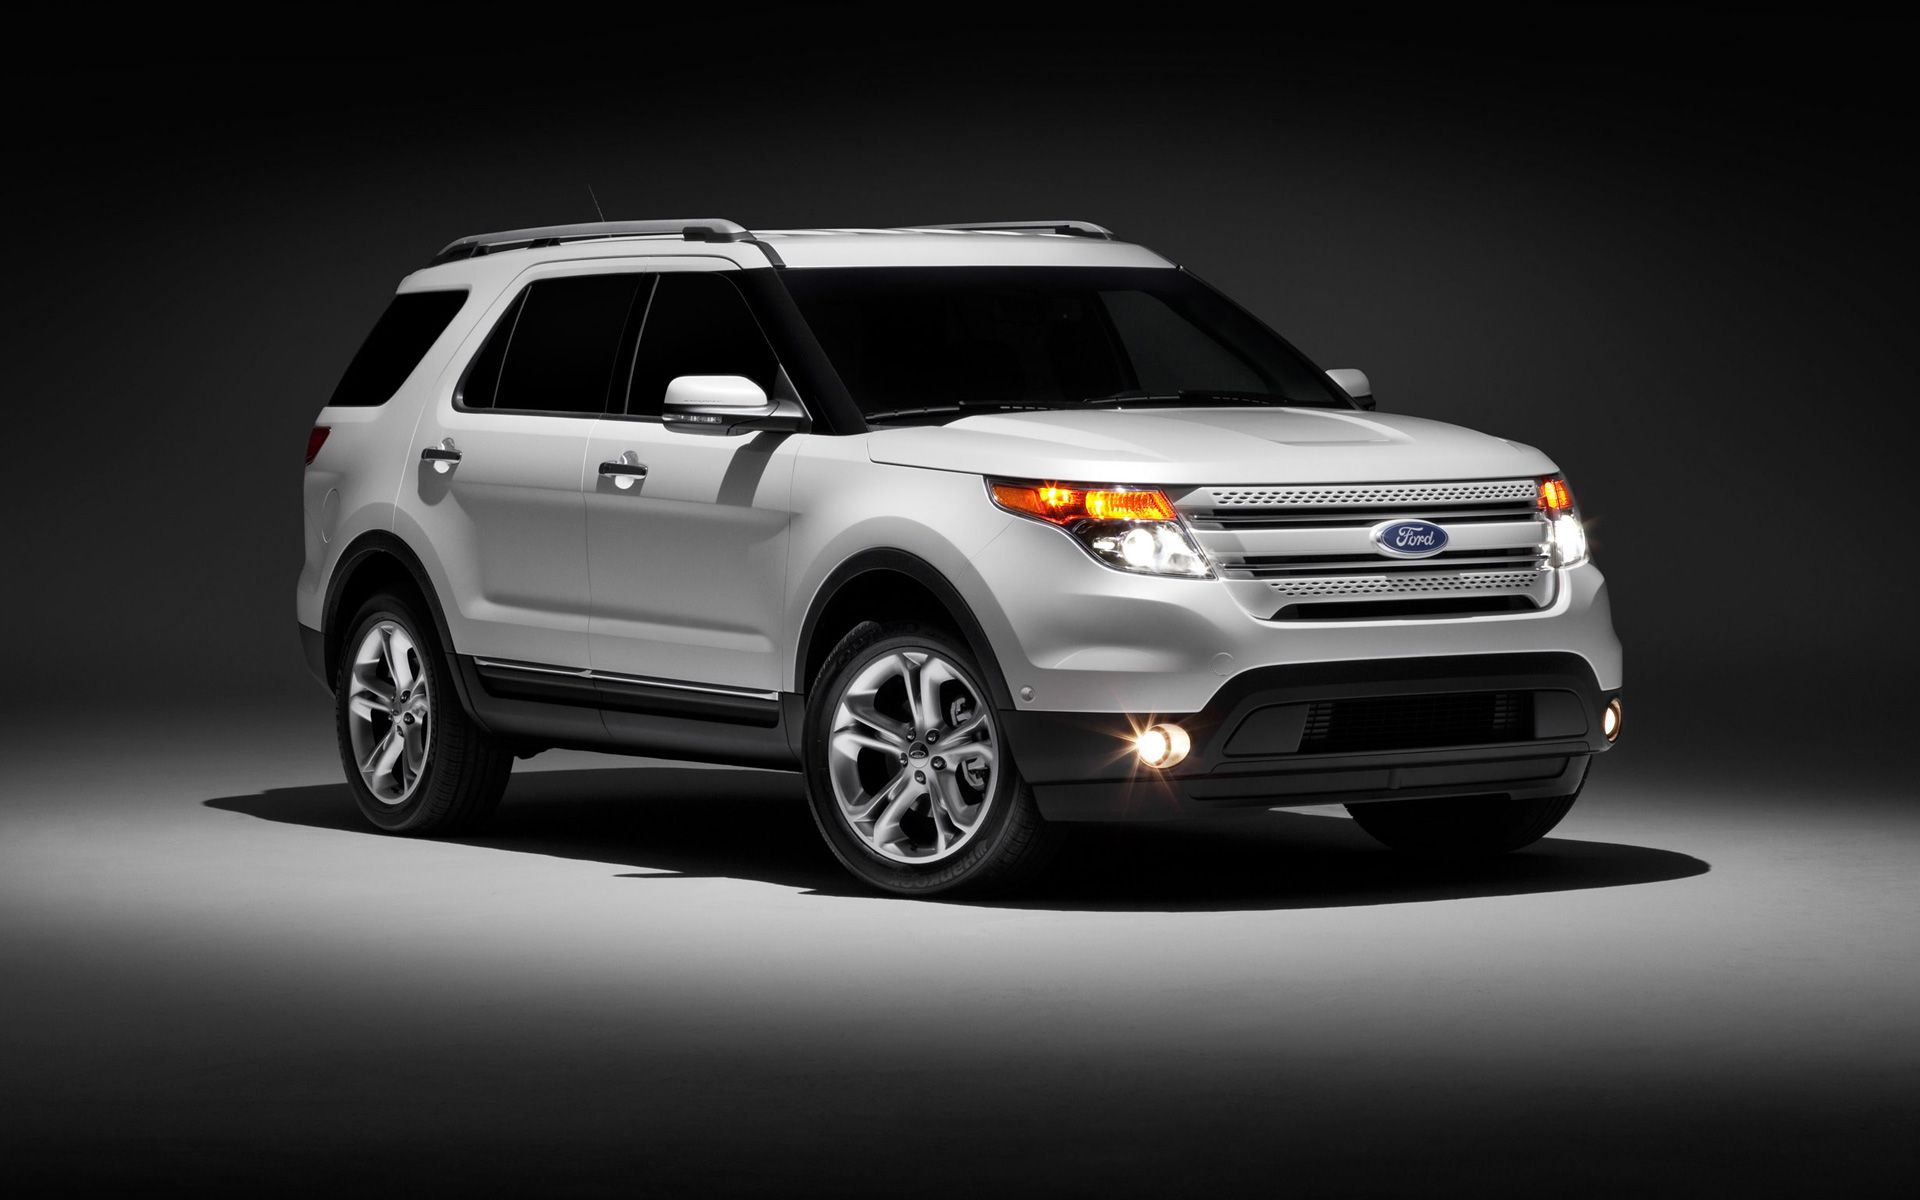 Ford Explorer Xlt We Really Need A New Suv 2011 Ford Explorer